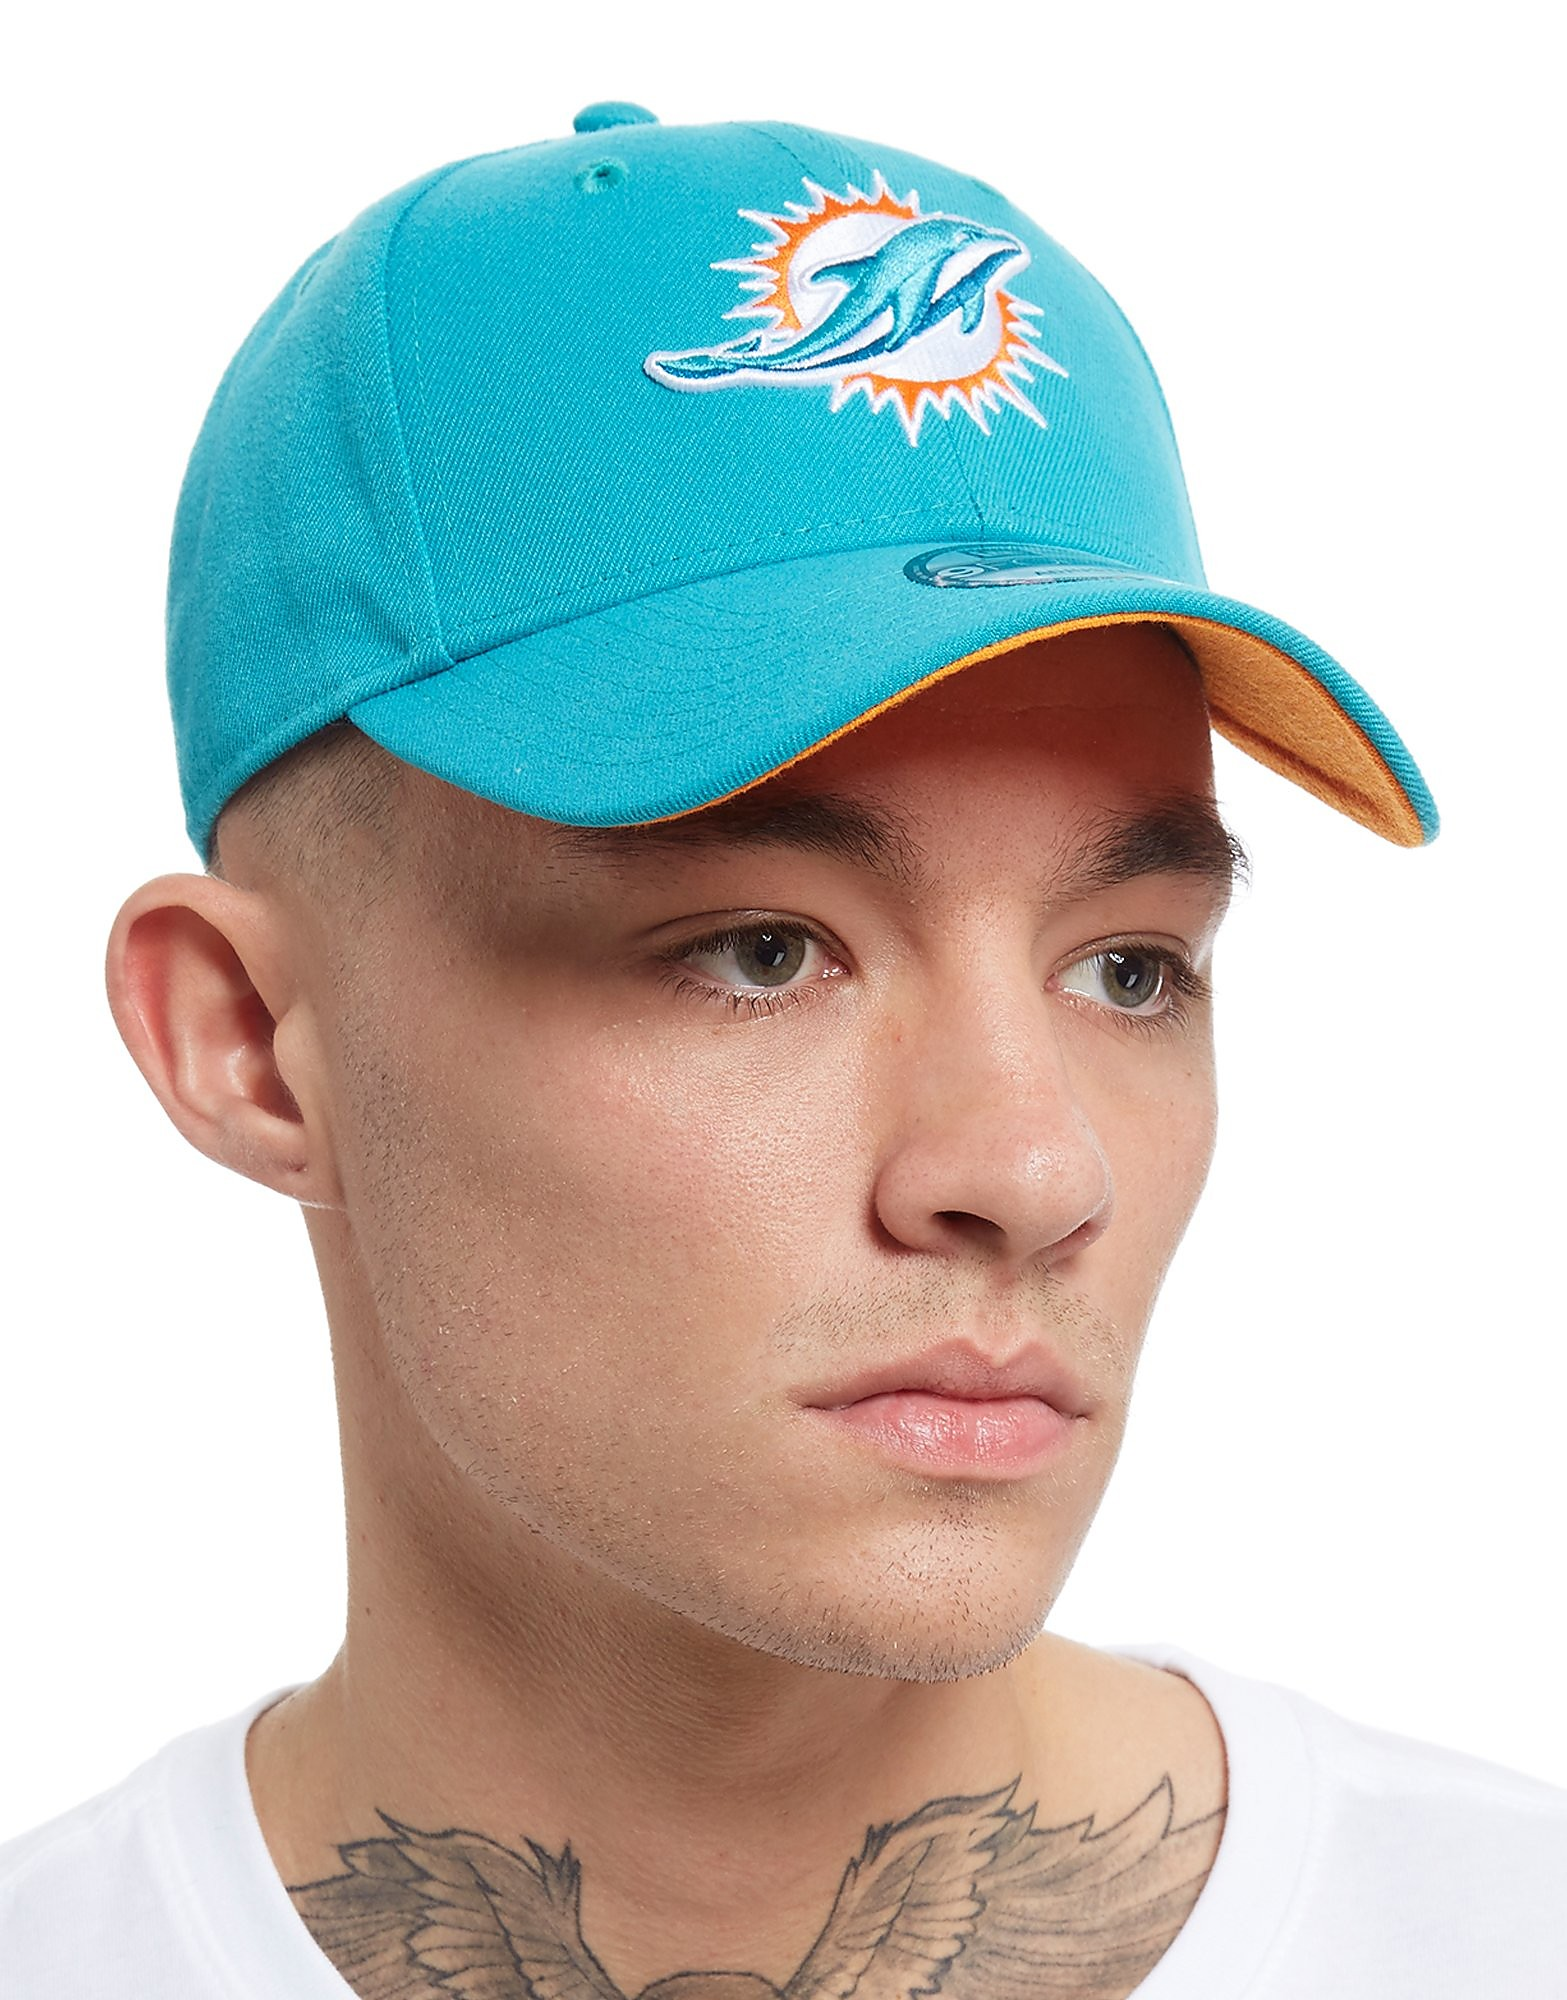 New Era Miami Dolphins 9FORTY Cap